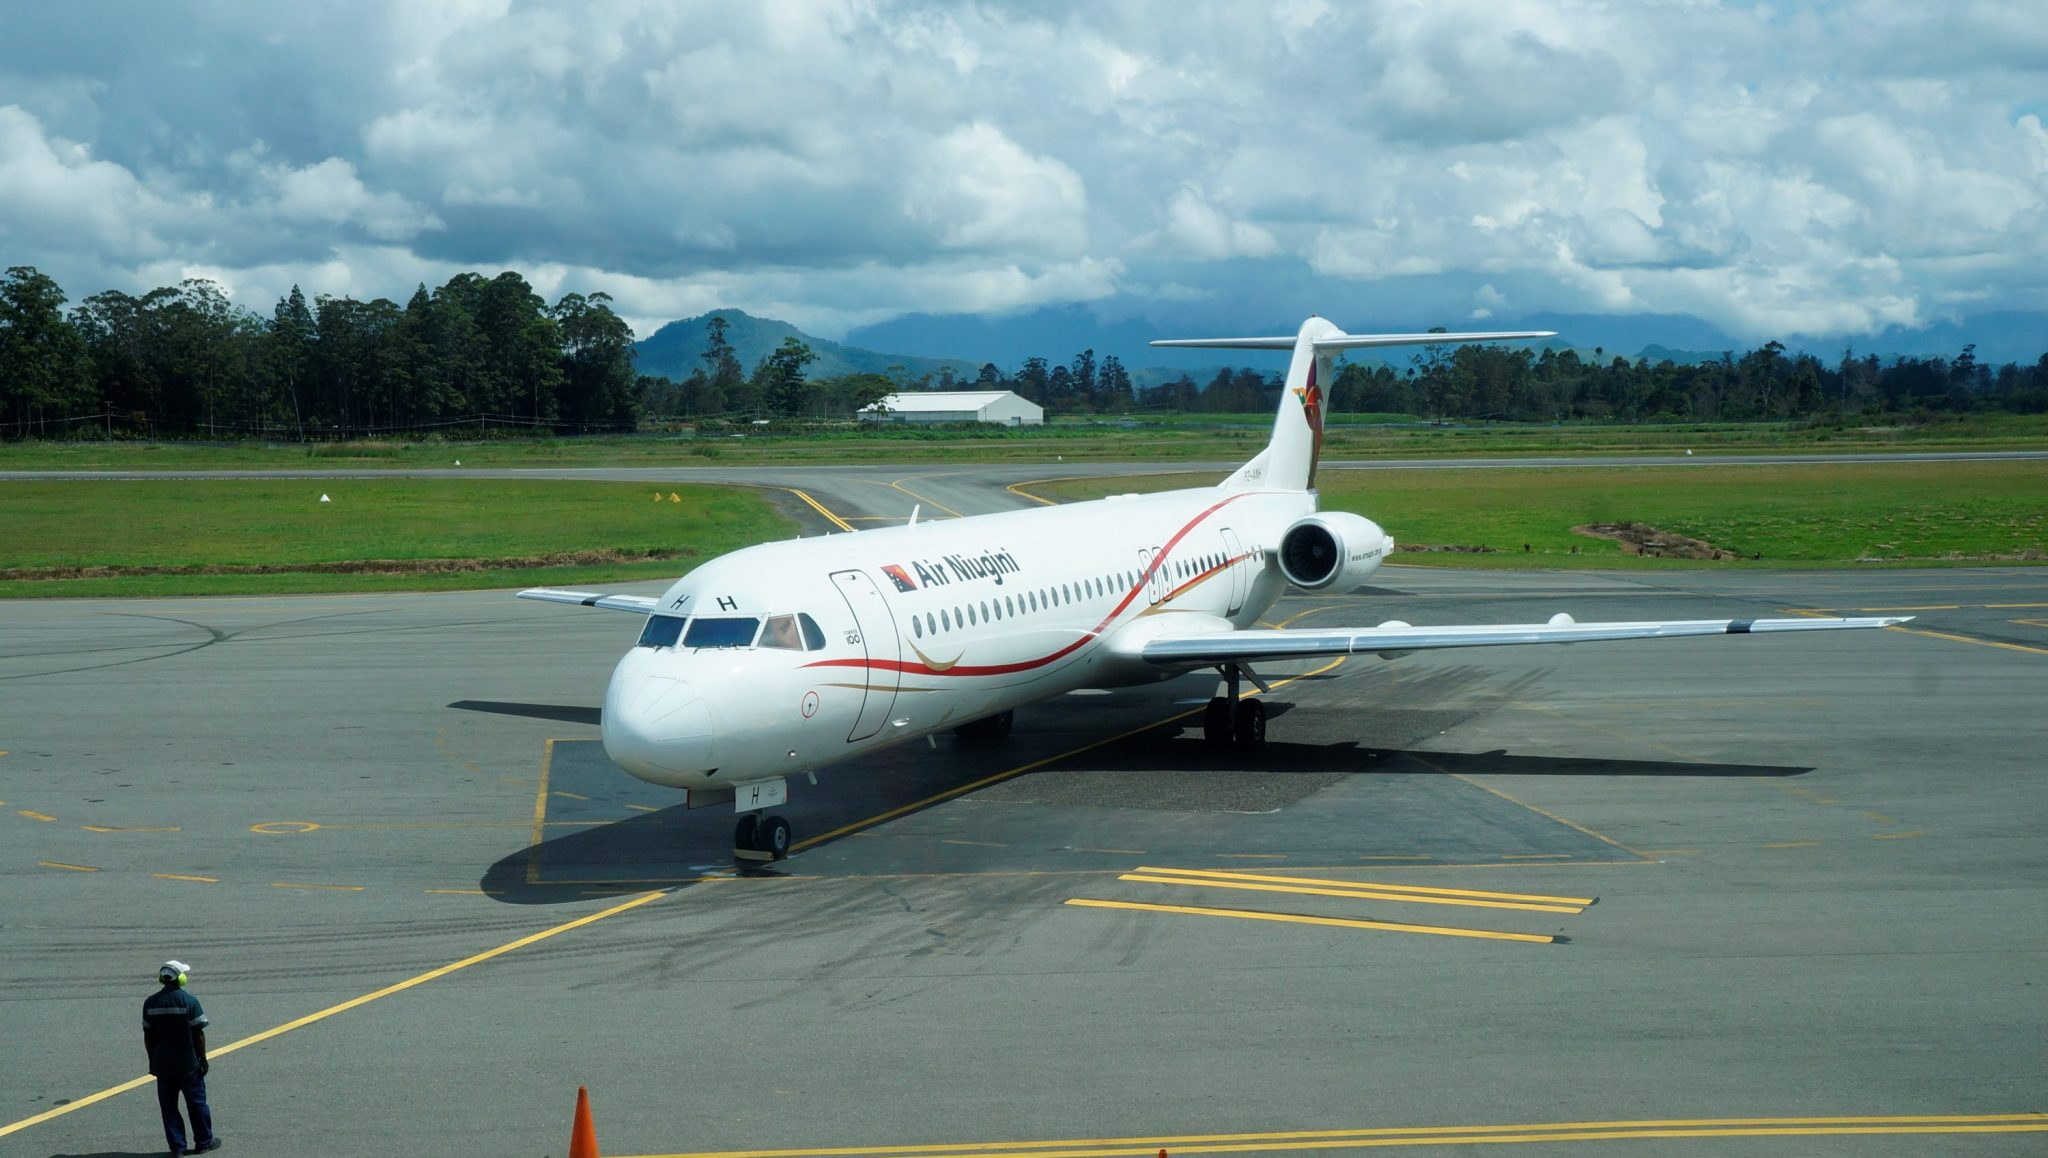 Fokker-100 Aircraft at Kagamuga International Airport in Mt Hagen